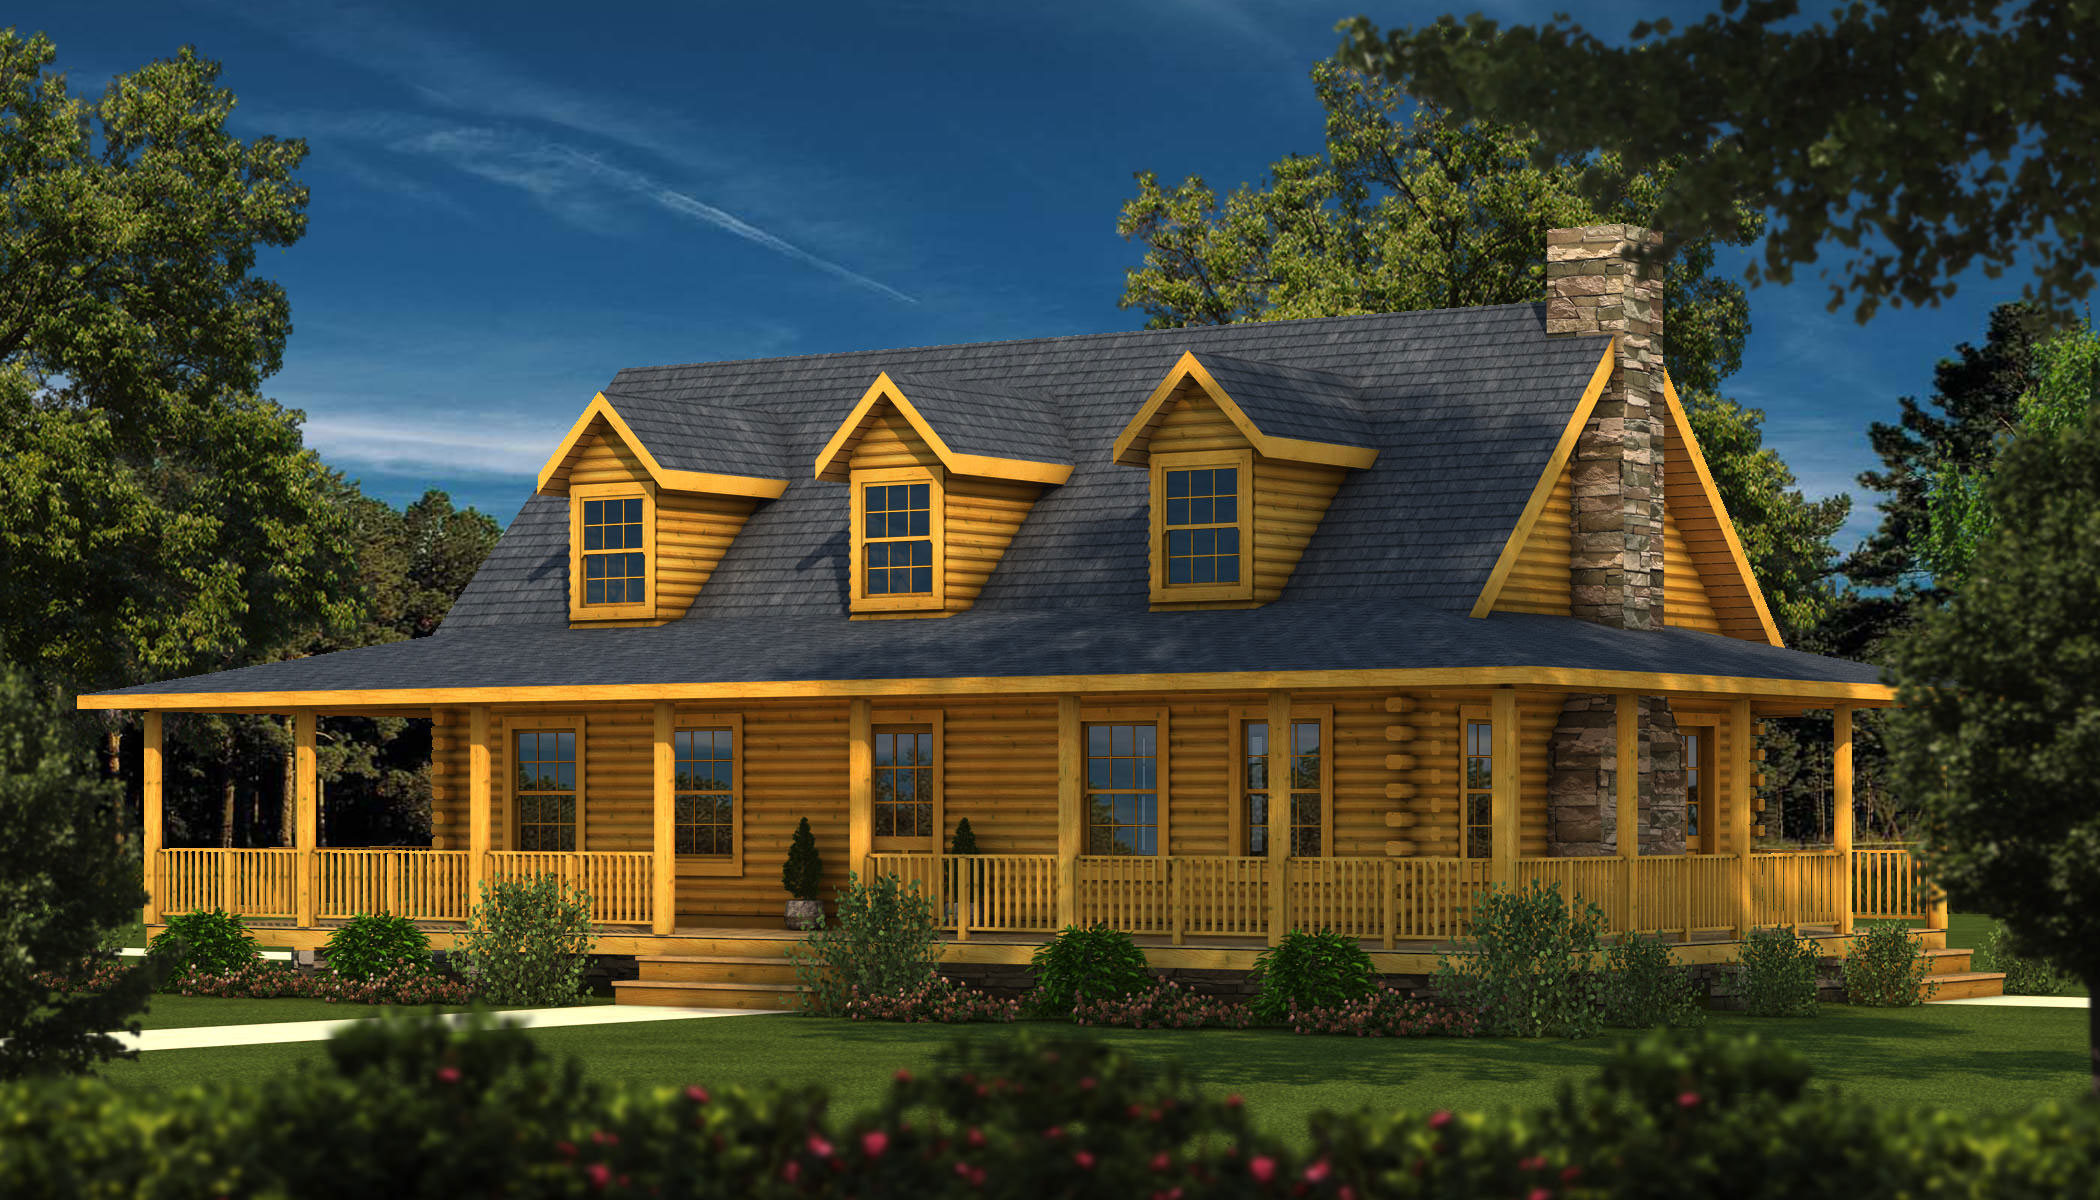 Baton rouge la log homes and log cabin kits southland for Baton rouge house plans